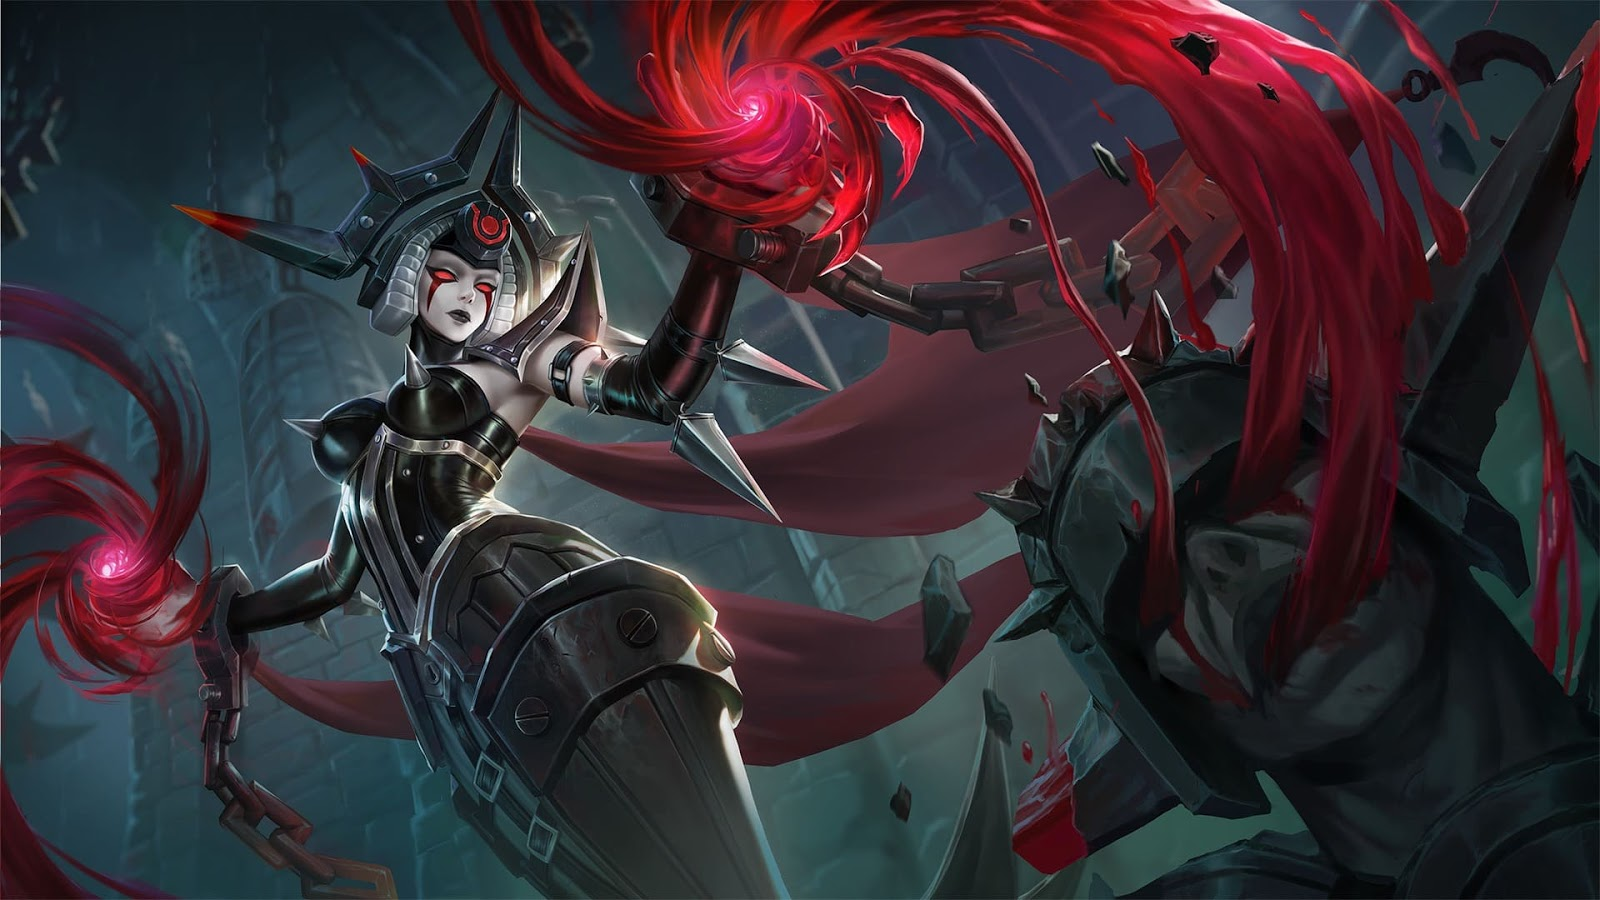 Wallpaper Vexana Imprisoner Skin Mobile Legends HD for PC